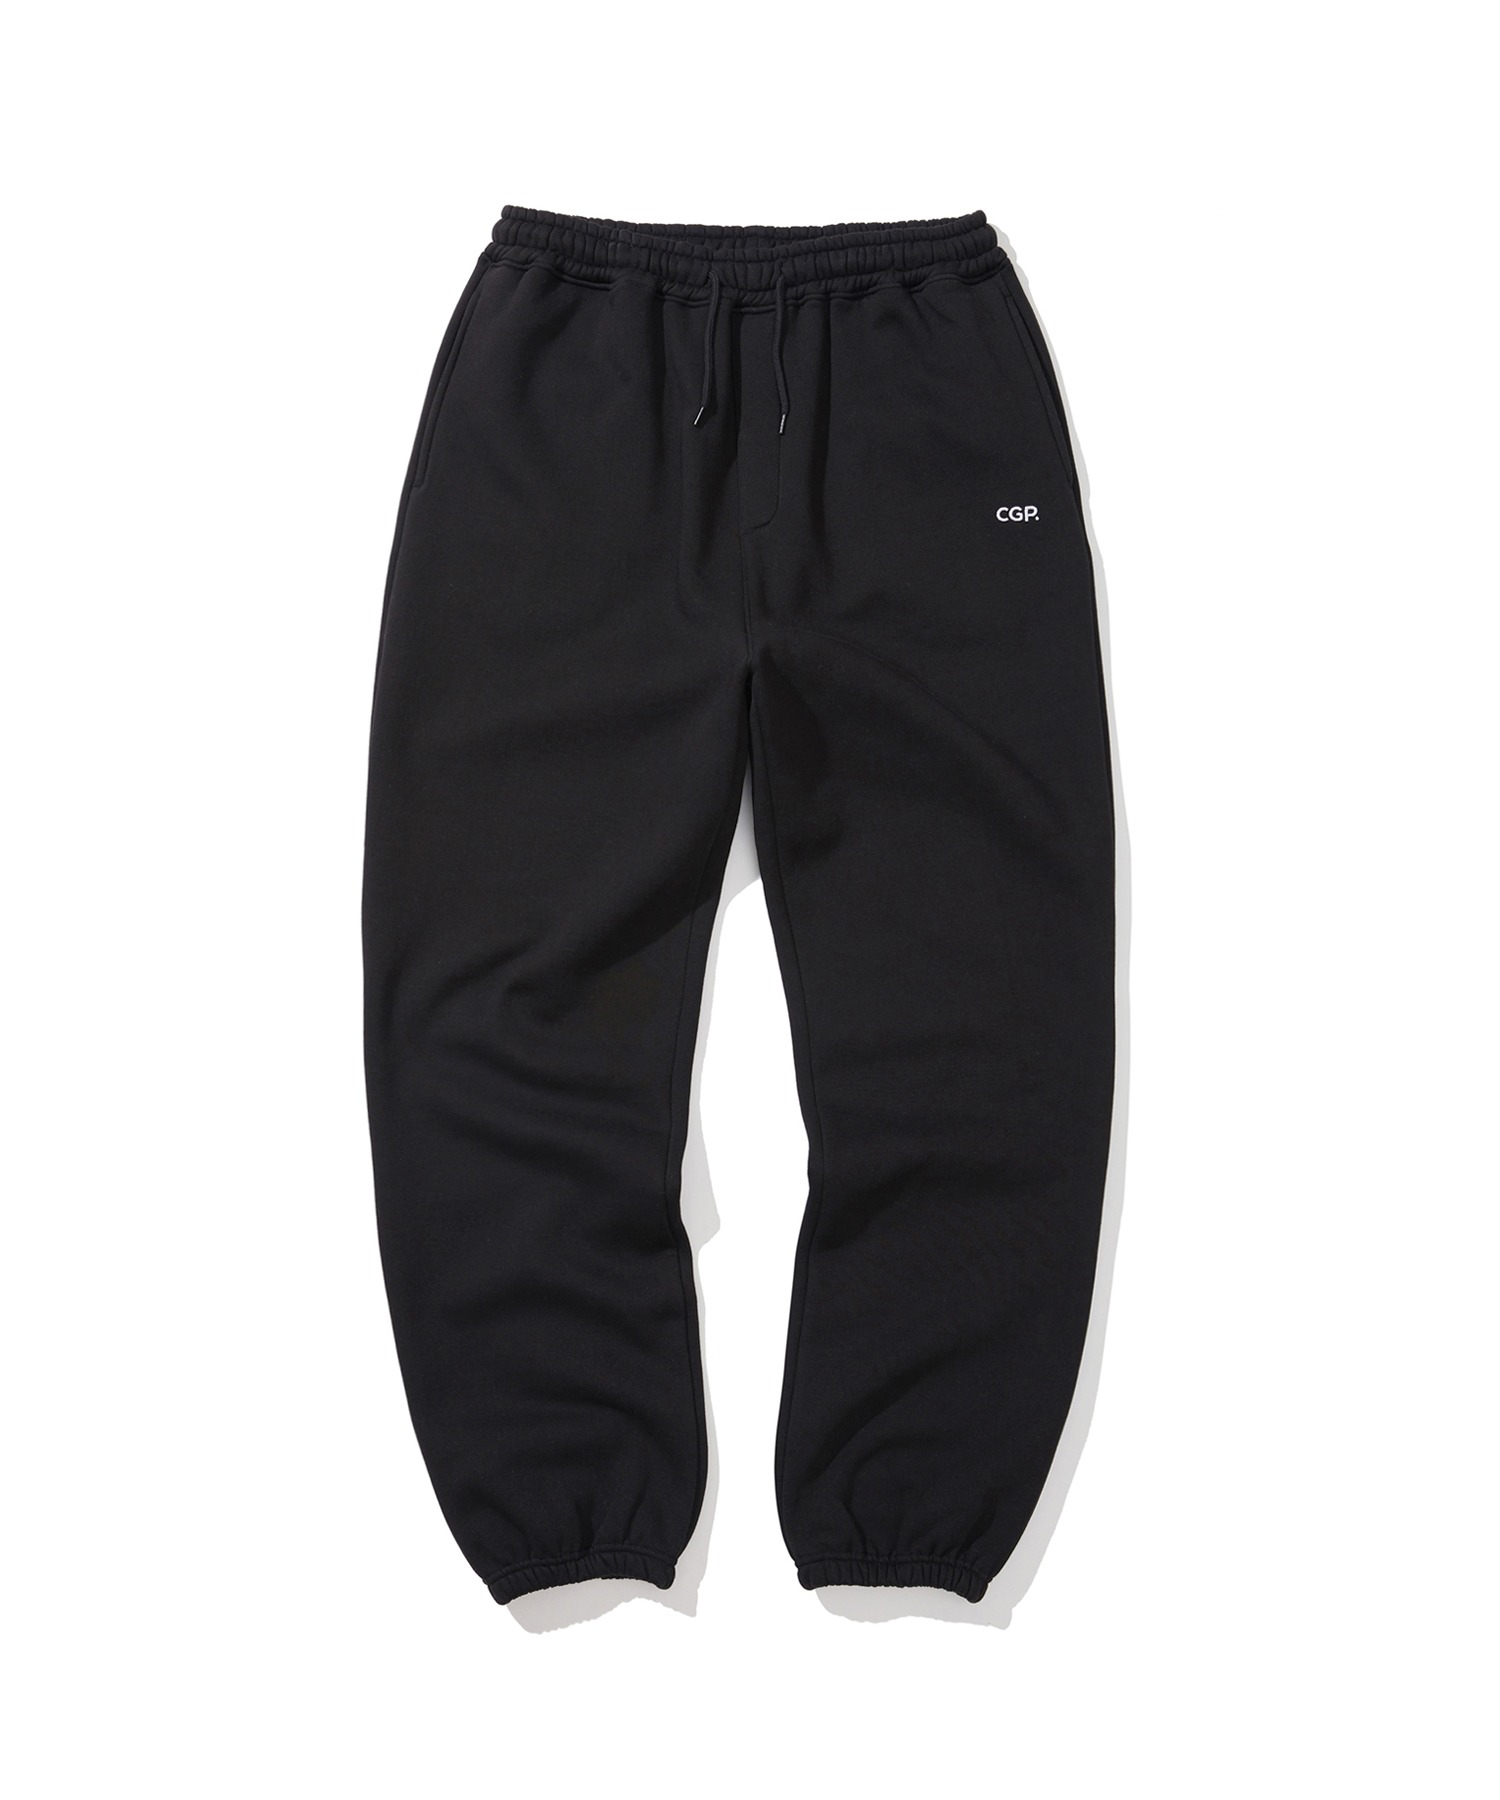 CGP BASIC TRAINING PANTS - BK